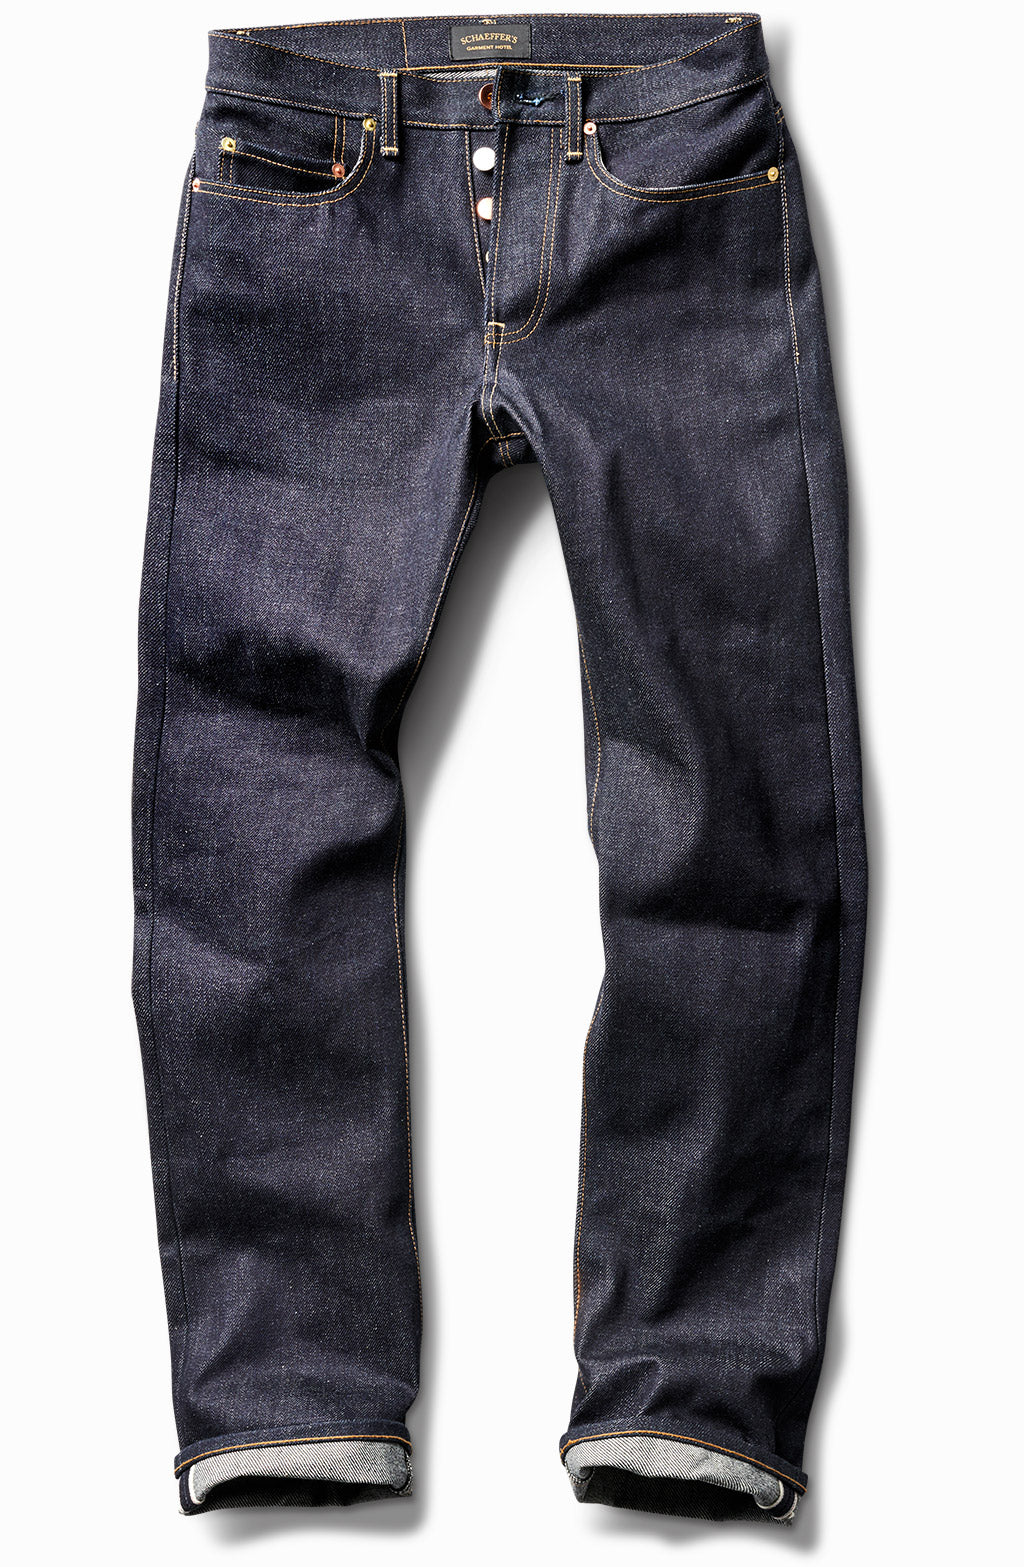 25oz Rope Indigo - Tall Straight